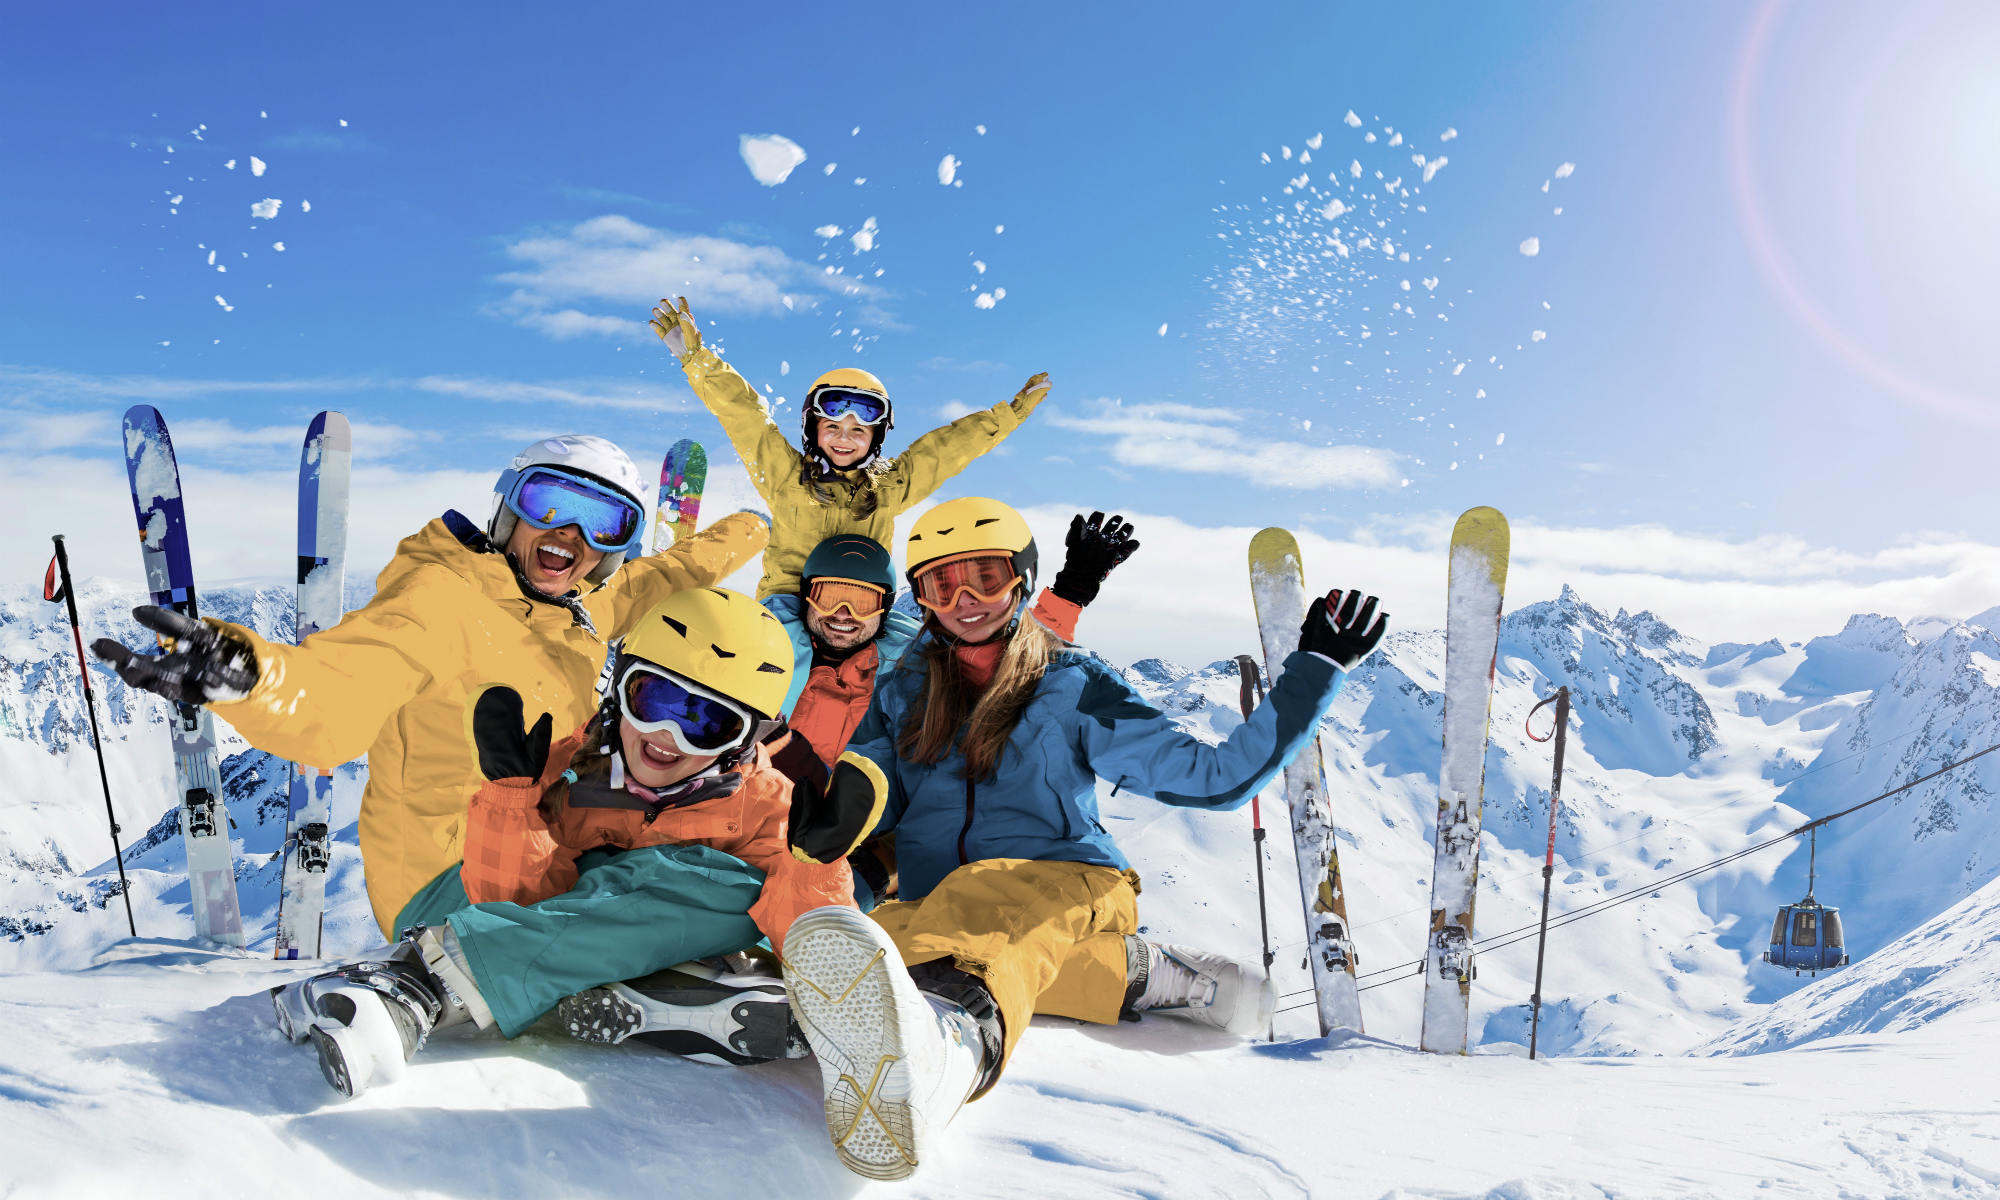 A family of skiers having fun at the top of a mountain.